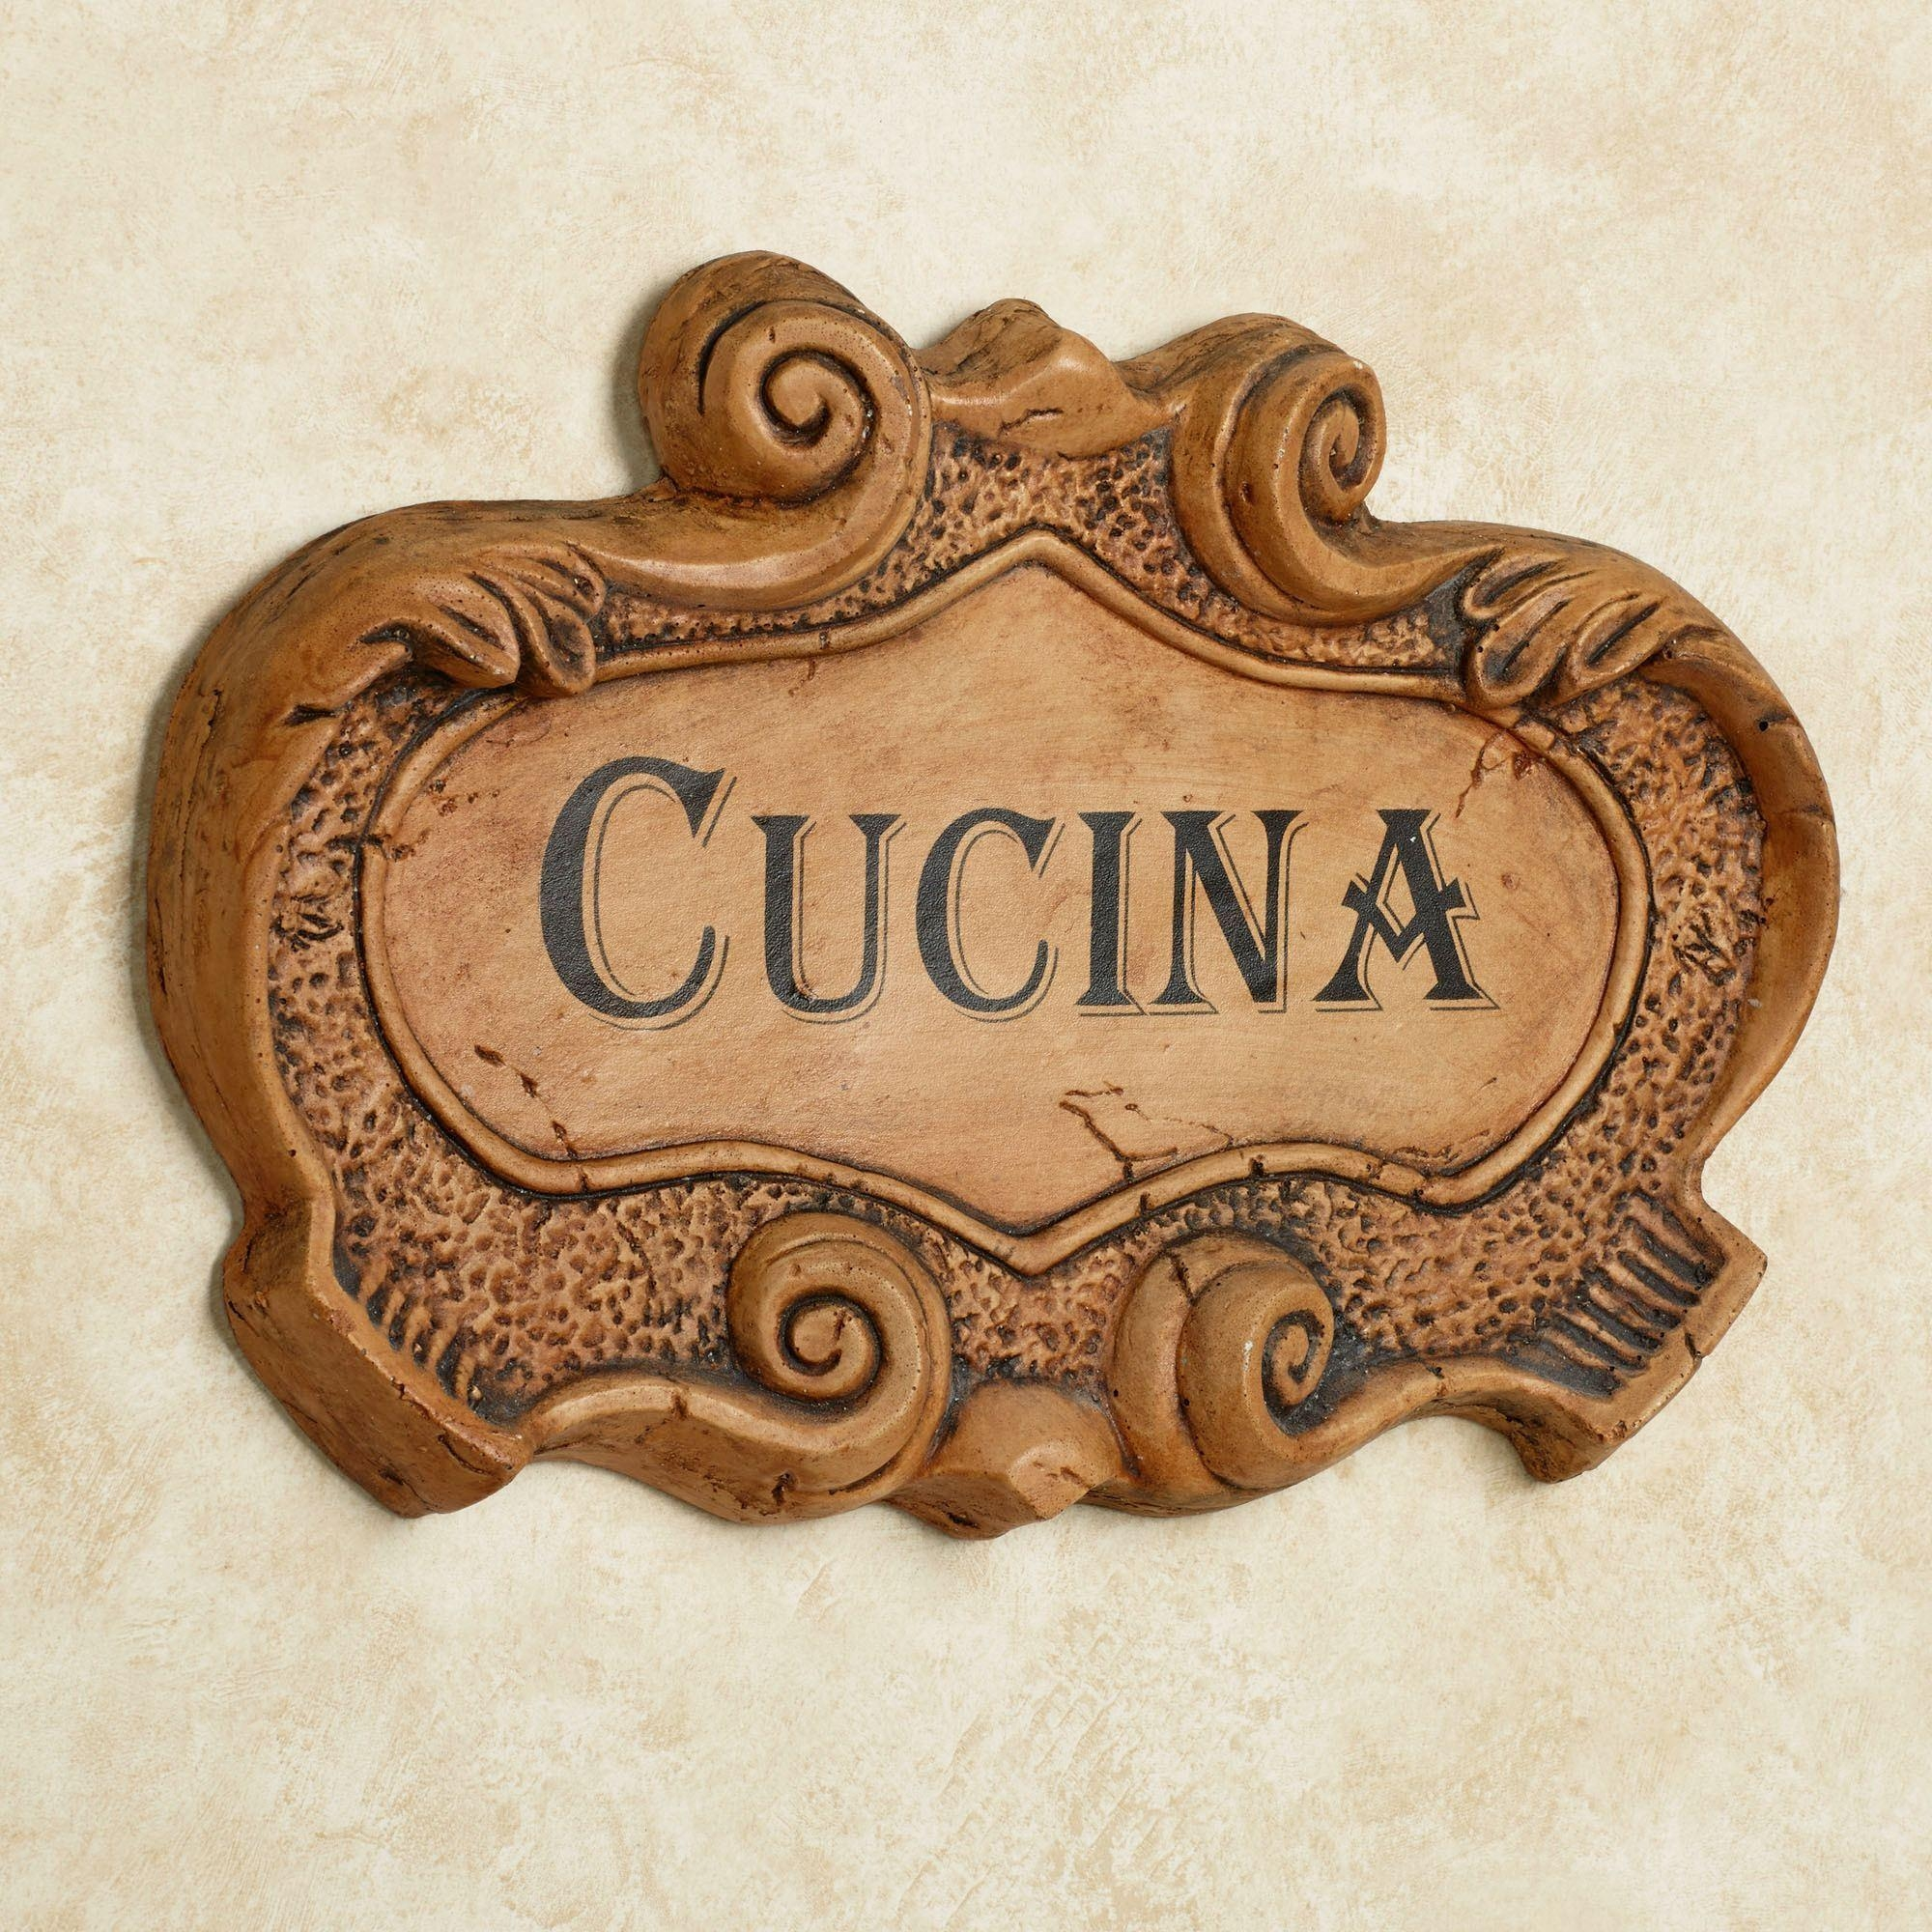 Cucina Italian Kitchen Wall Plaque Regarding Italian Wall Art For Kitchen (View 19 of 20)